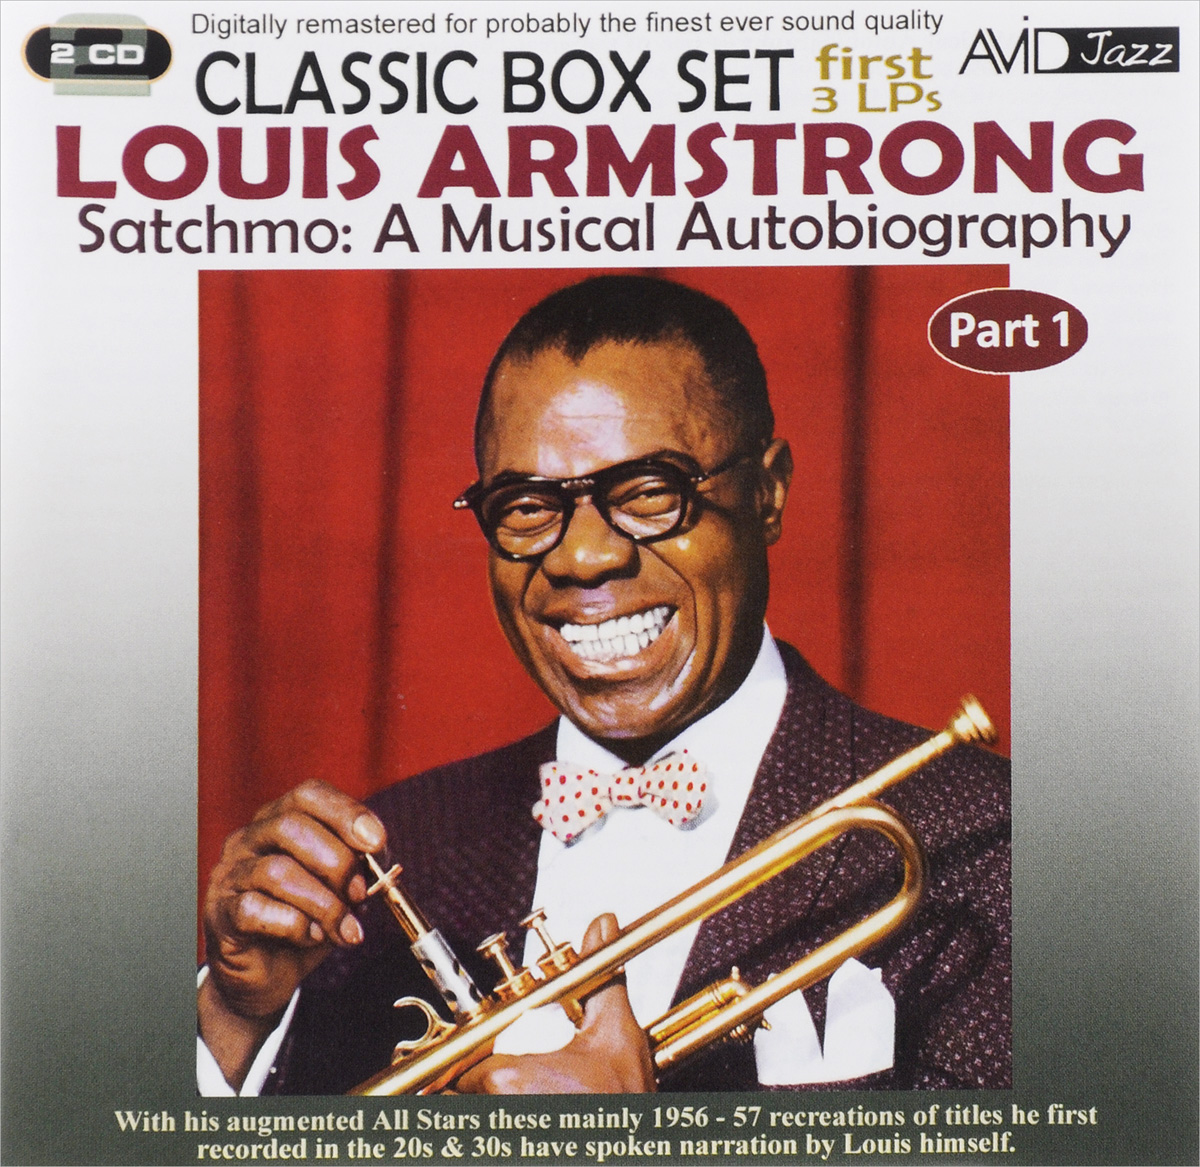 Луи Армстронг,Louis Armstrong & The All Stars Avid Jazz. Louis Armstrong. Satchmo. A Musical Autobiography. Part 1 (2 CD) a m trovato satchmo